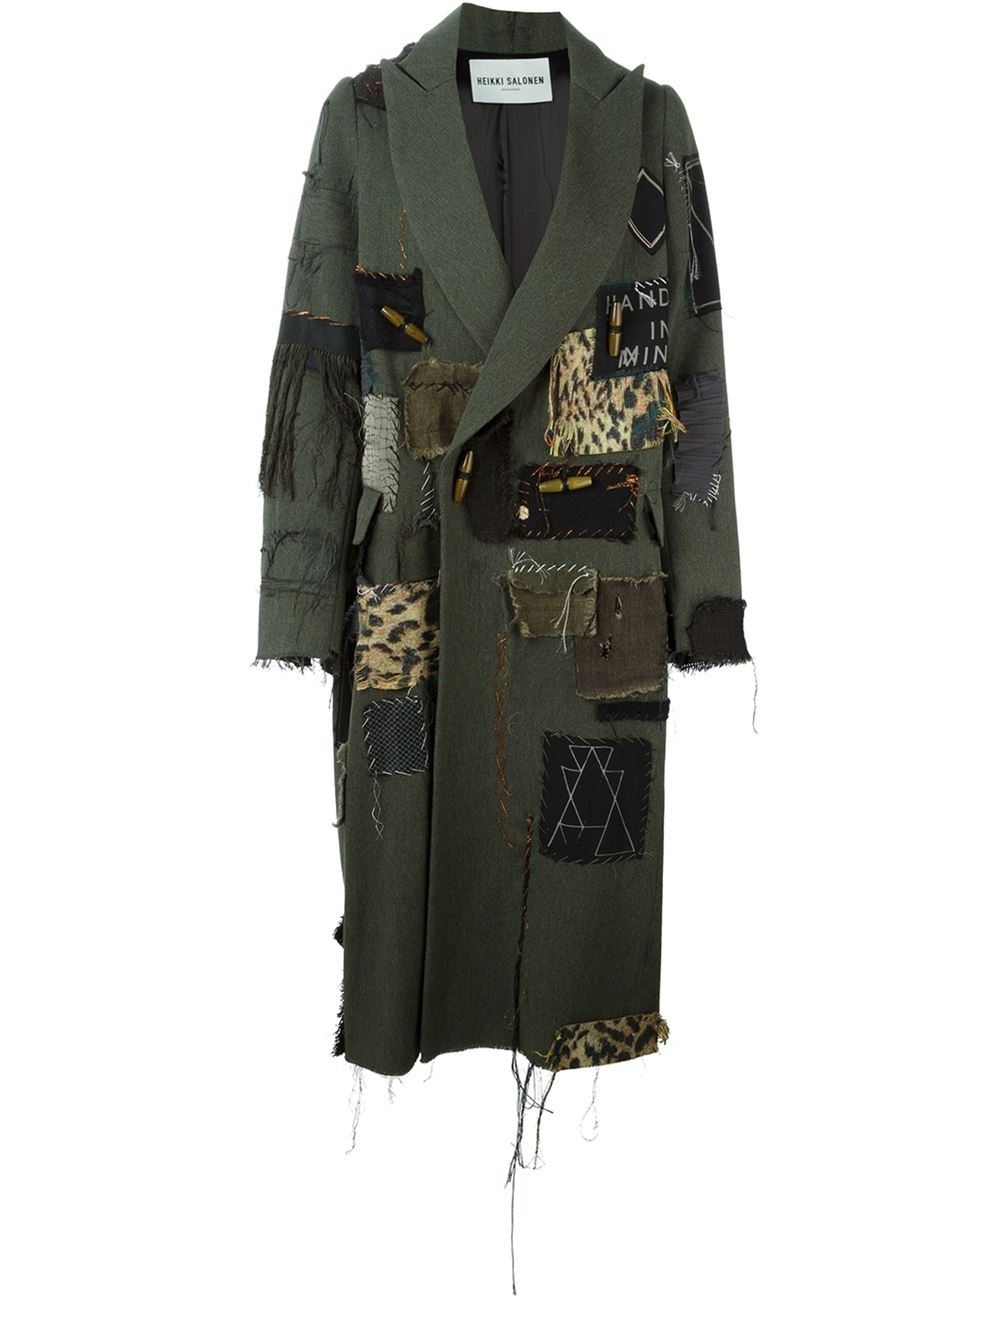 Patched long coat, £1,585, Heikke Salonen. From Hostem and Farfetch.